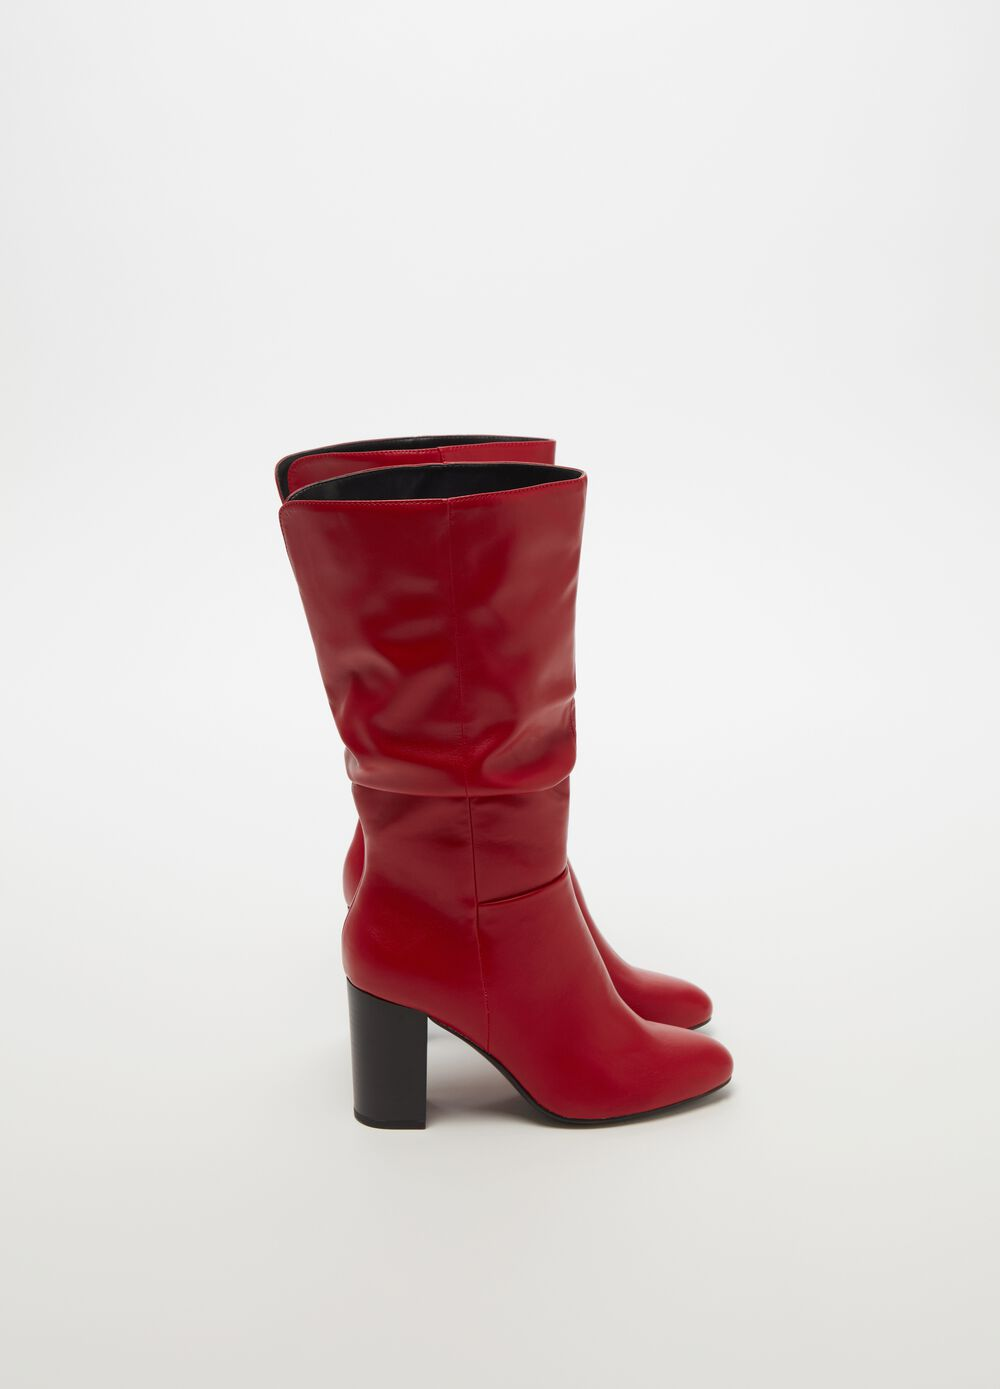 Shiny leather-look boots with chunky heel